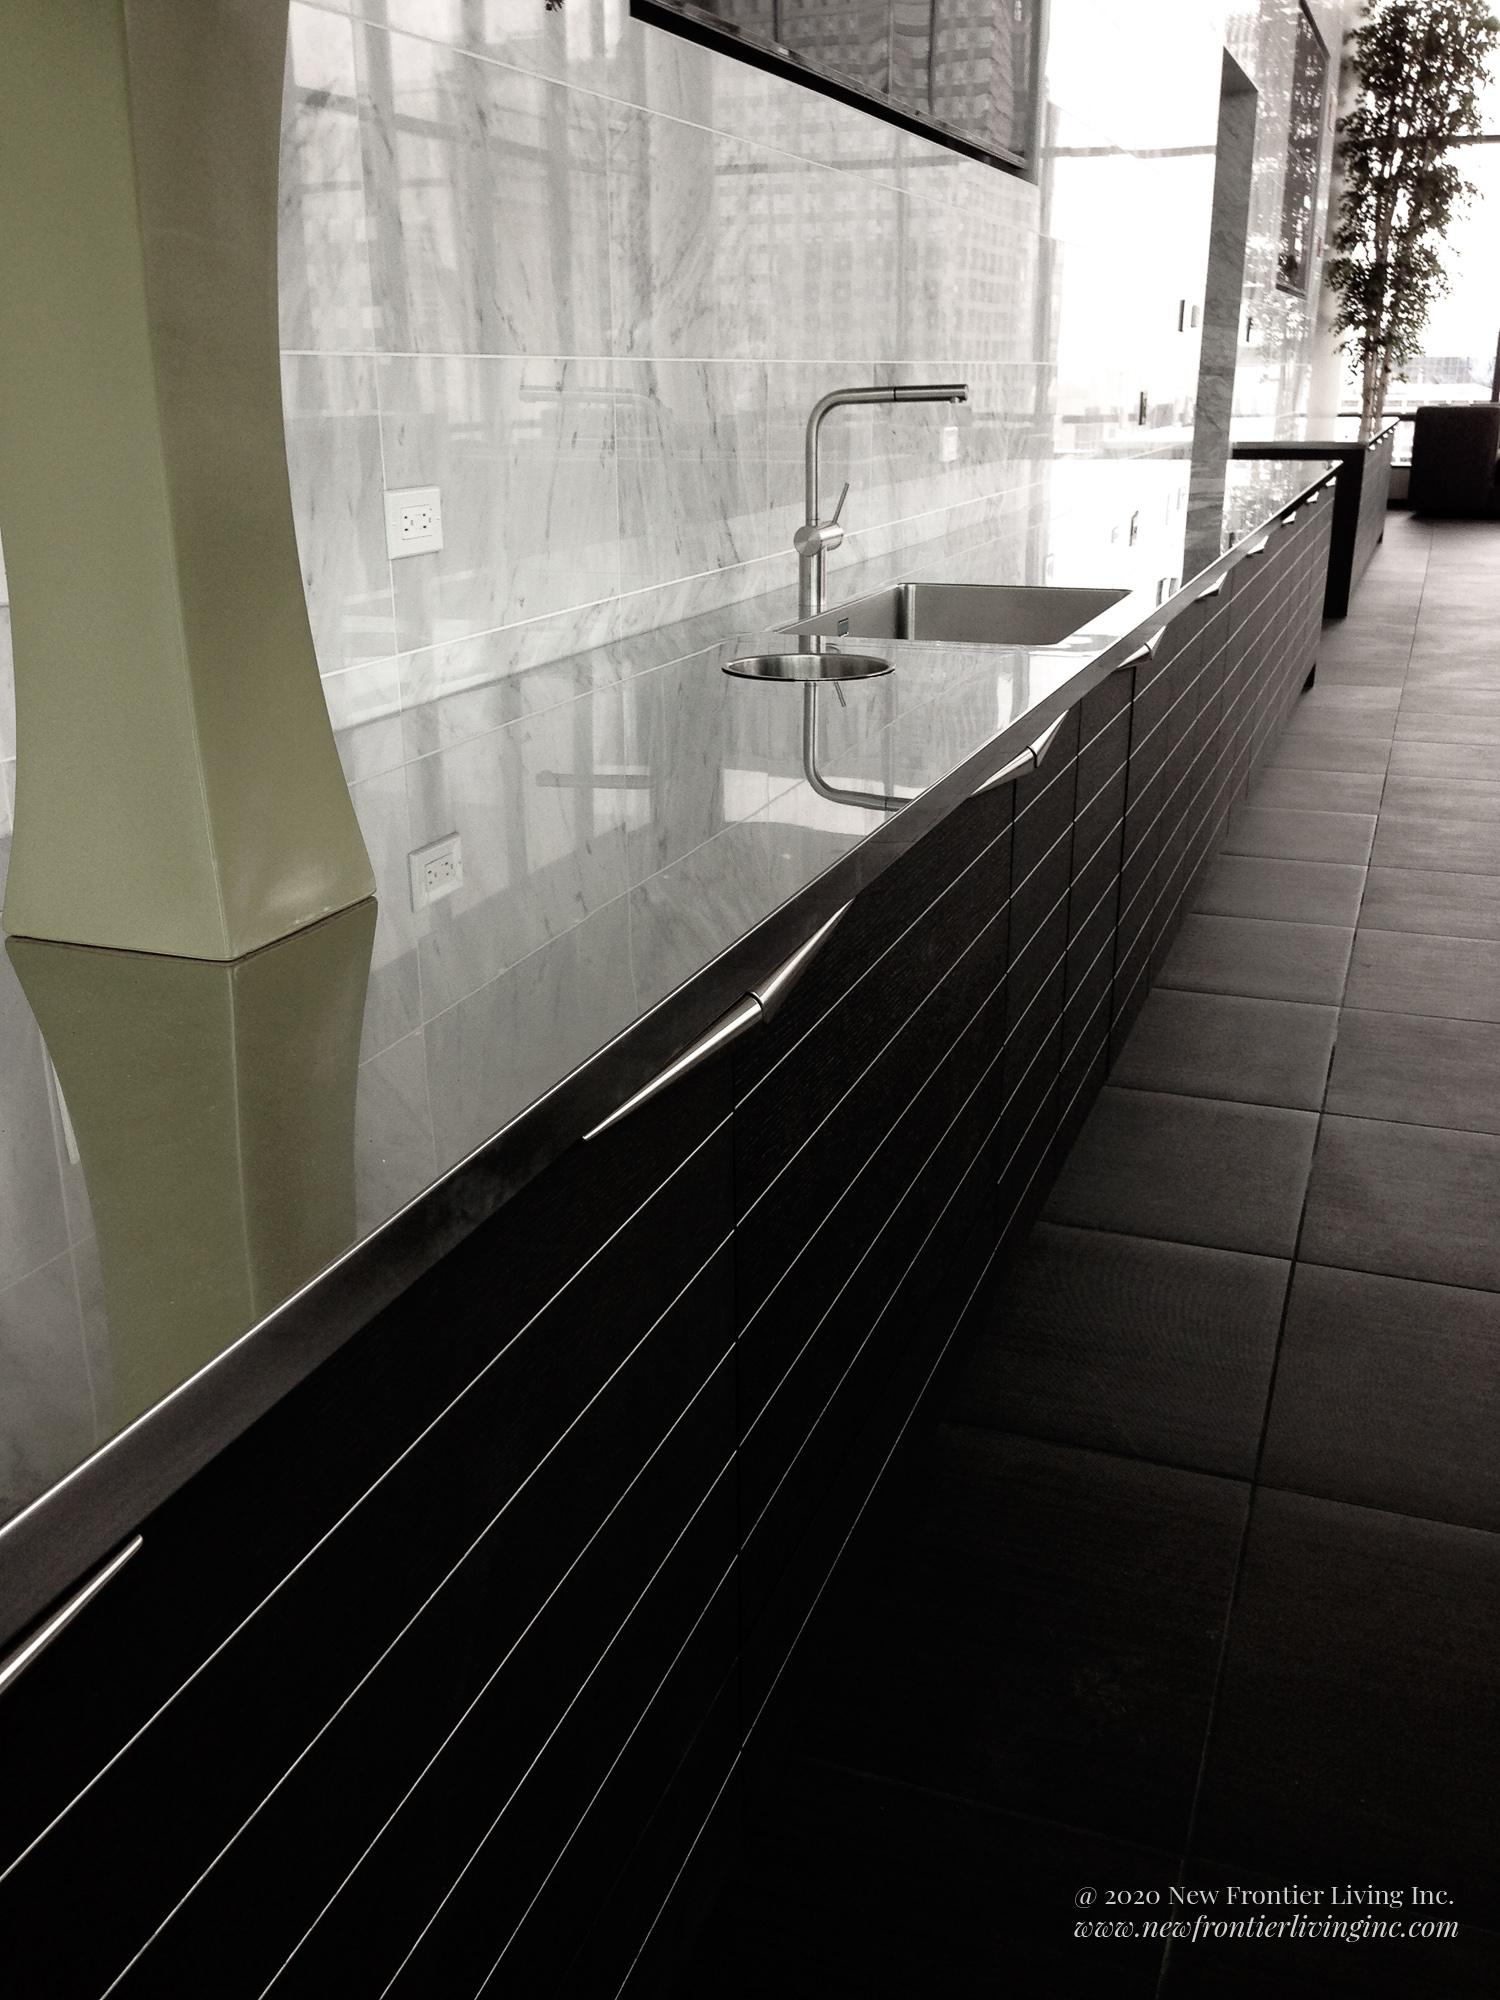 Long row of black cabinetry by the wall, with a sink and faucet, large backsplash